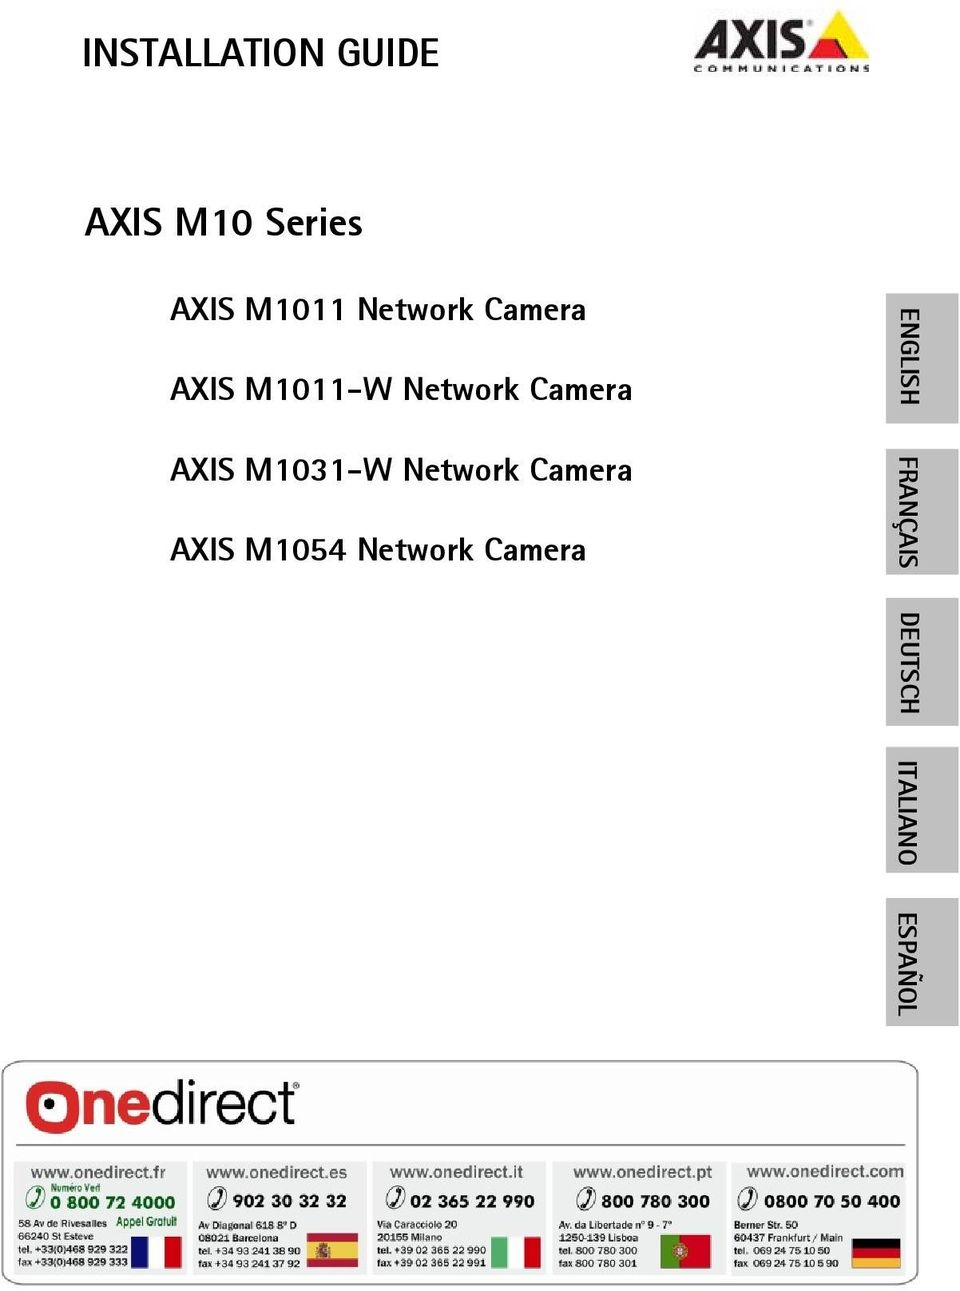 AXIS M1031-W Network Camera AXIS M1054